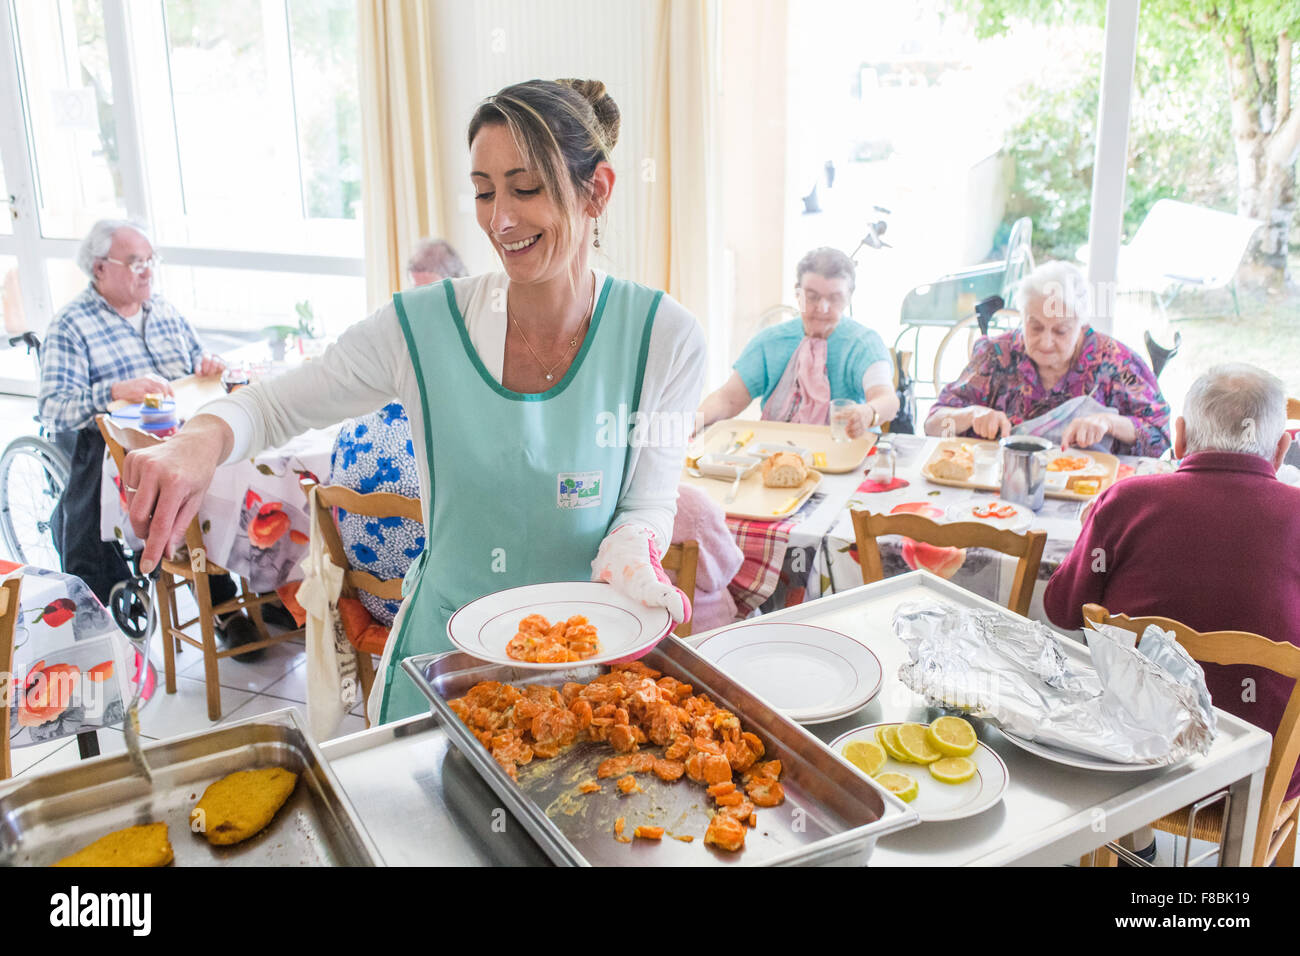 Elderly personns in the refectory of a residence for independent seniors, Dordogne, France. - Stock Image